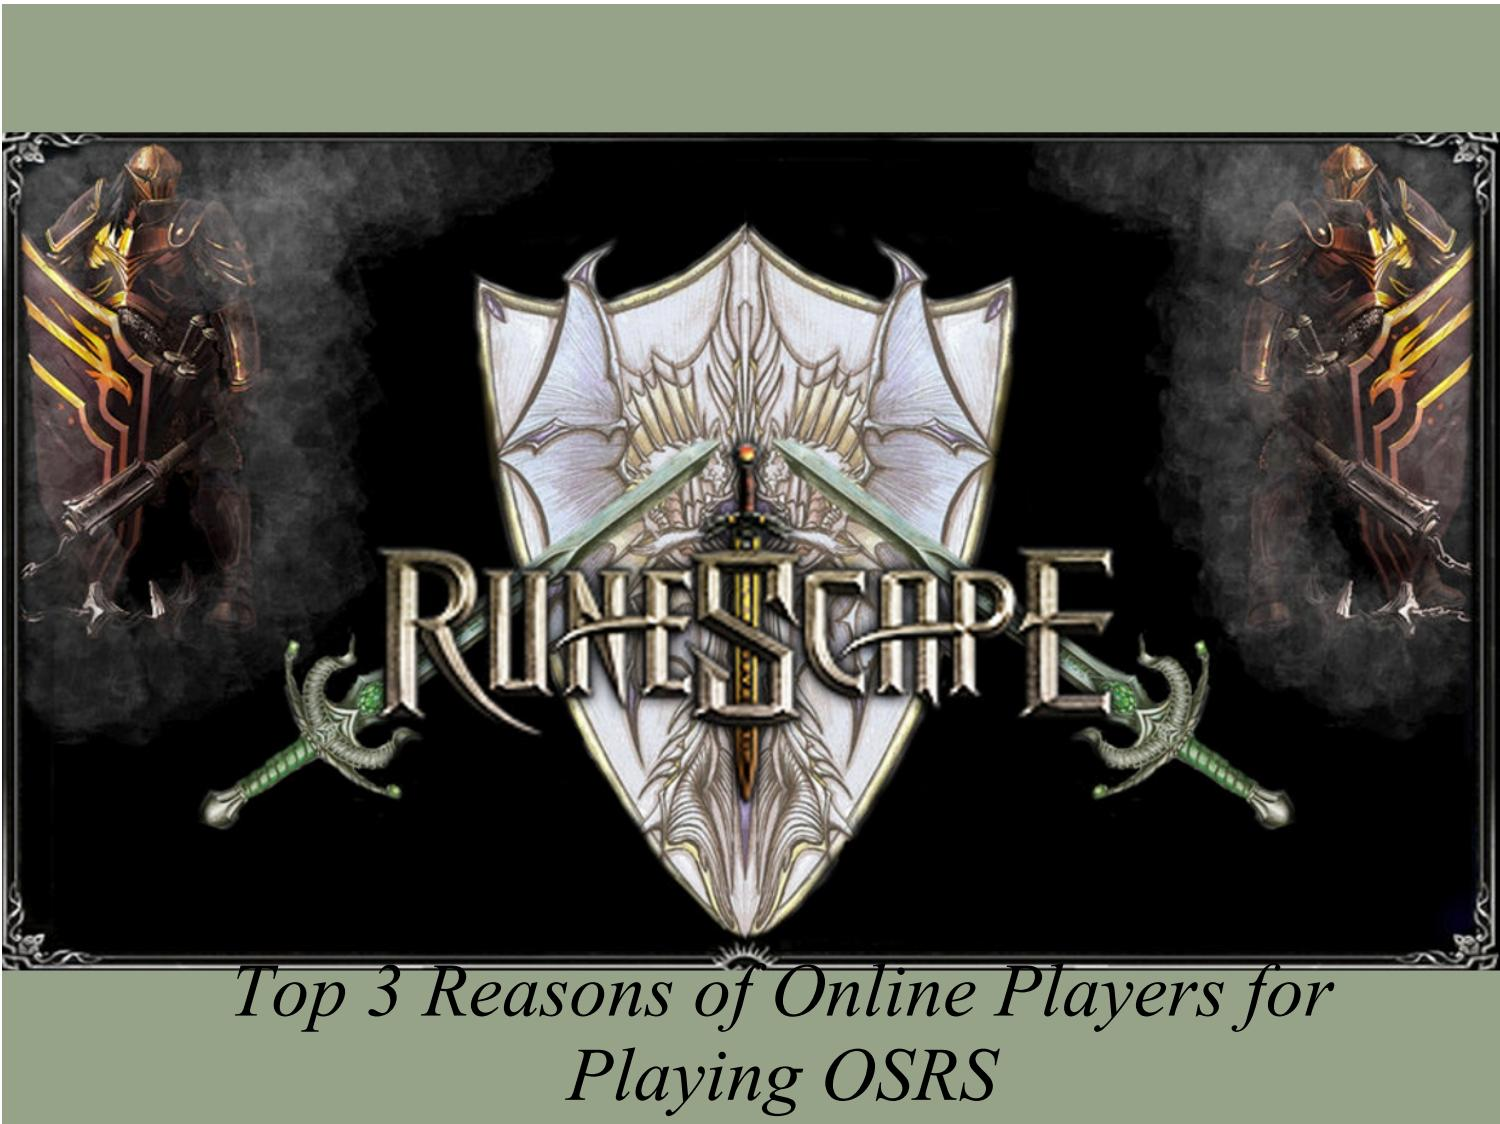 Top 3 Reasons of Online Players for Playing OSRS by Milton S